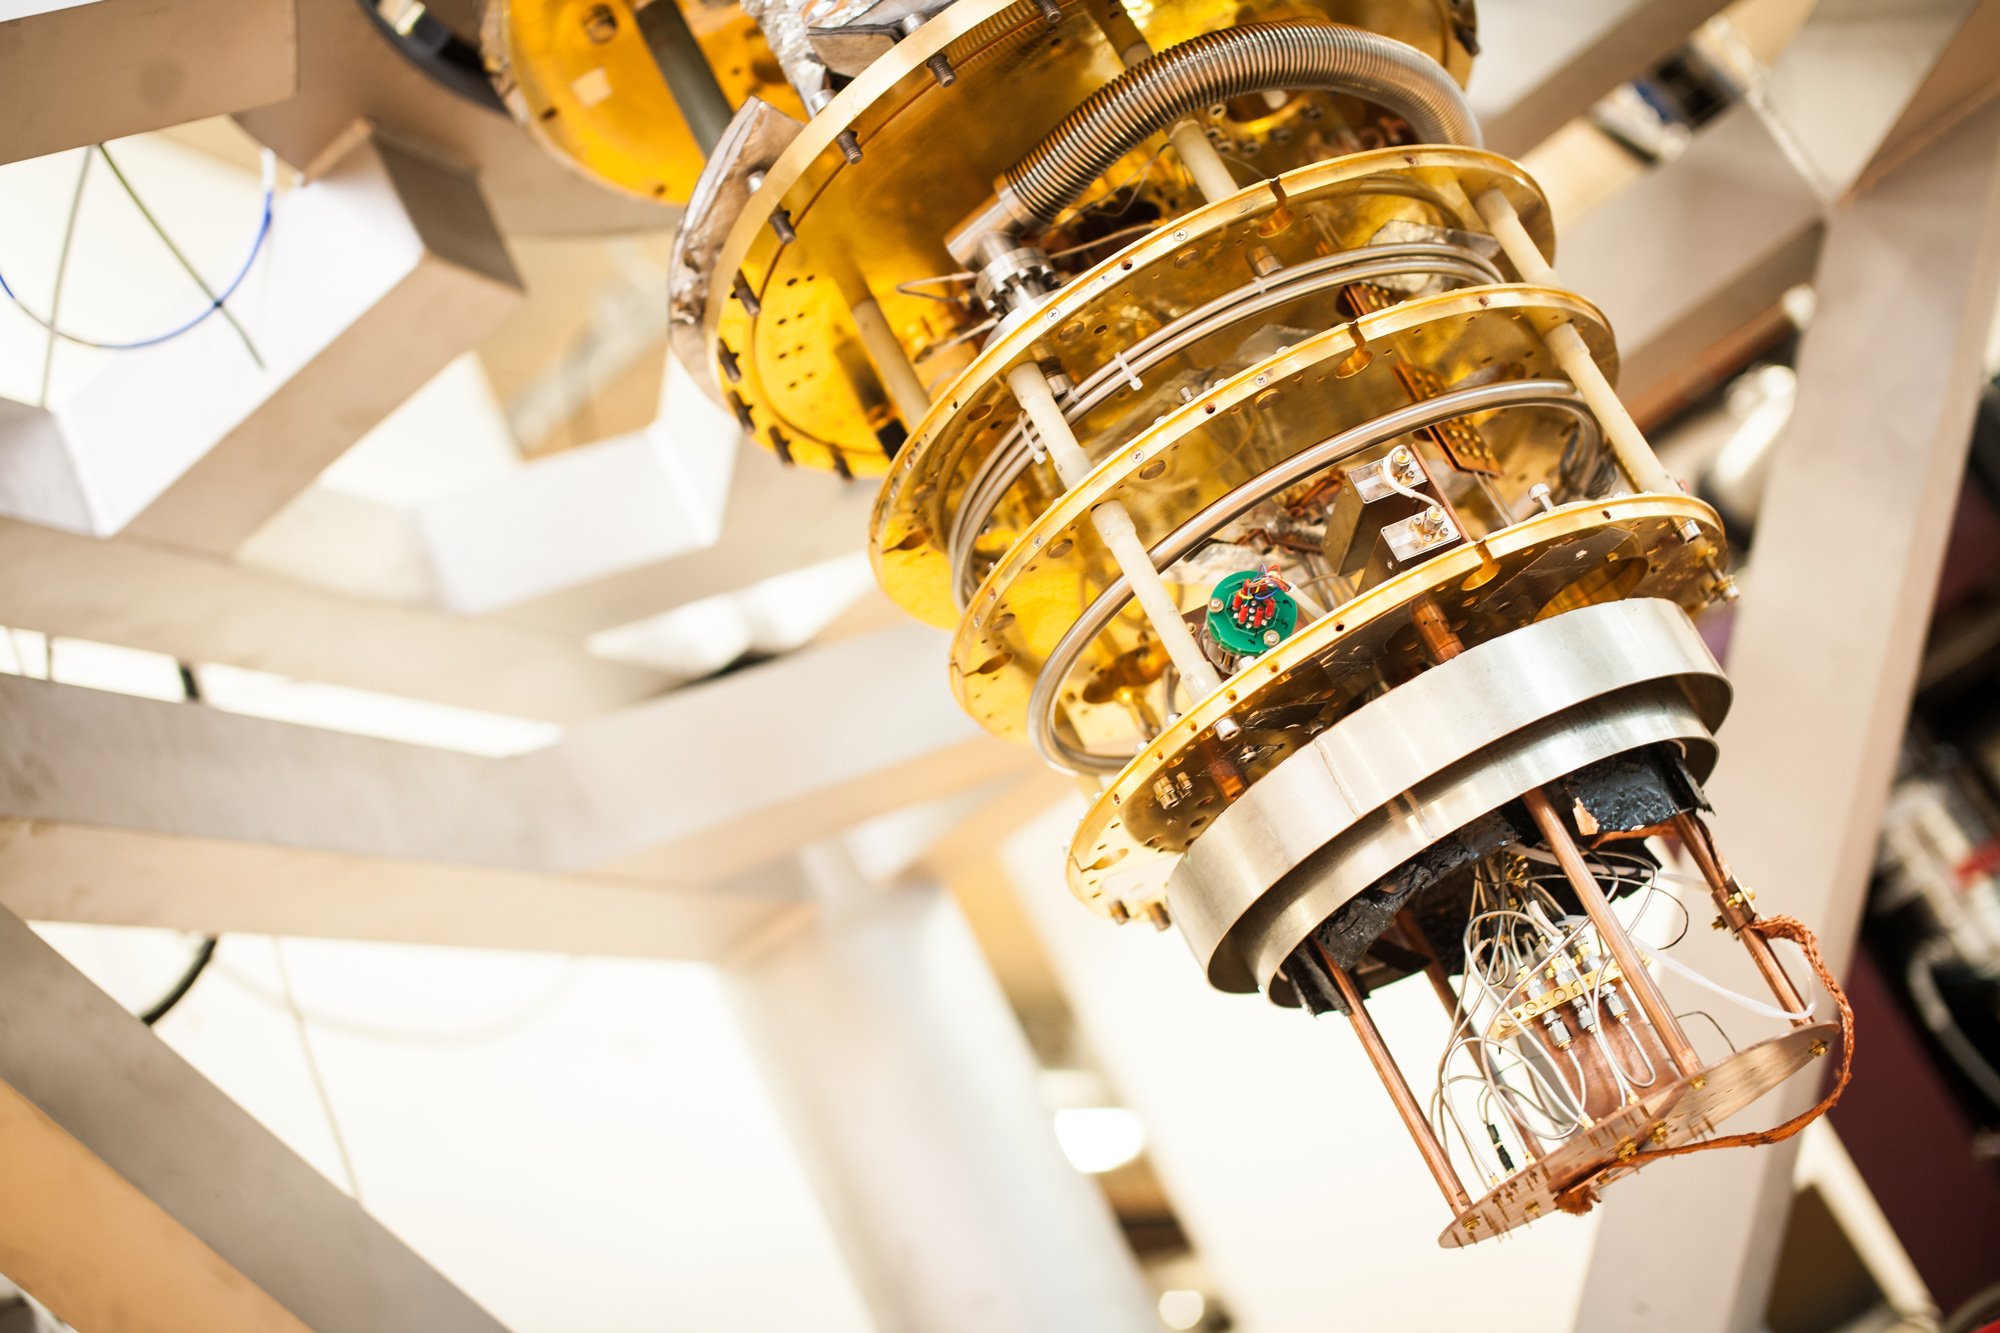 Researchers at TU Delft in the Netherlands use equipment like this to test quantum computing devices at supercool temperatures, in a collaboration with chip maker Intel.